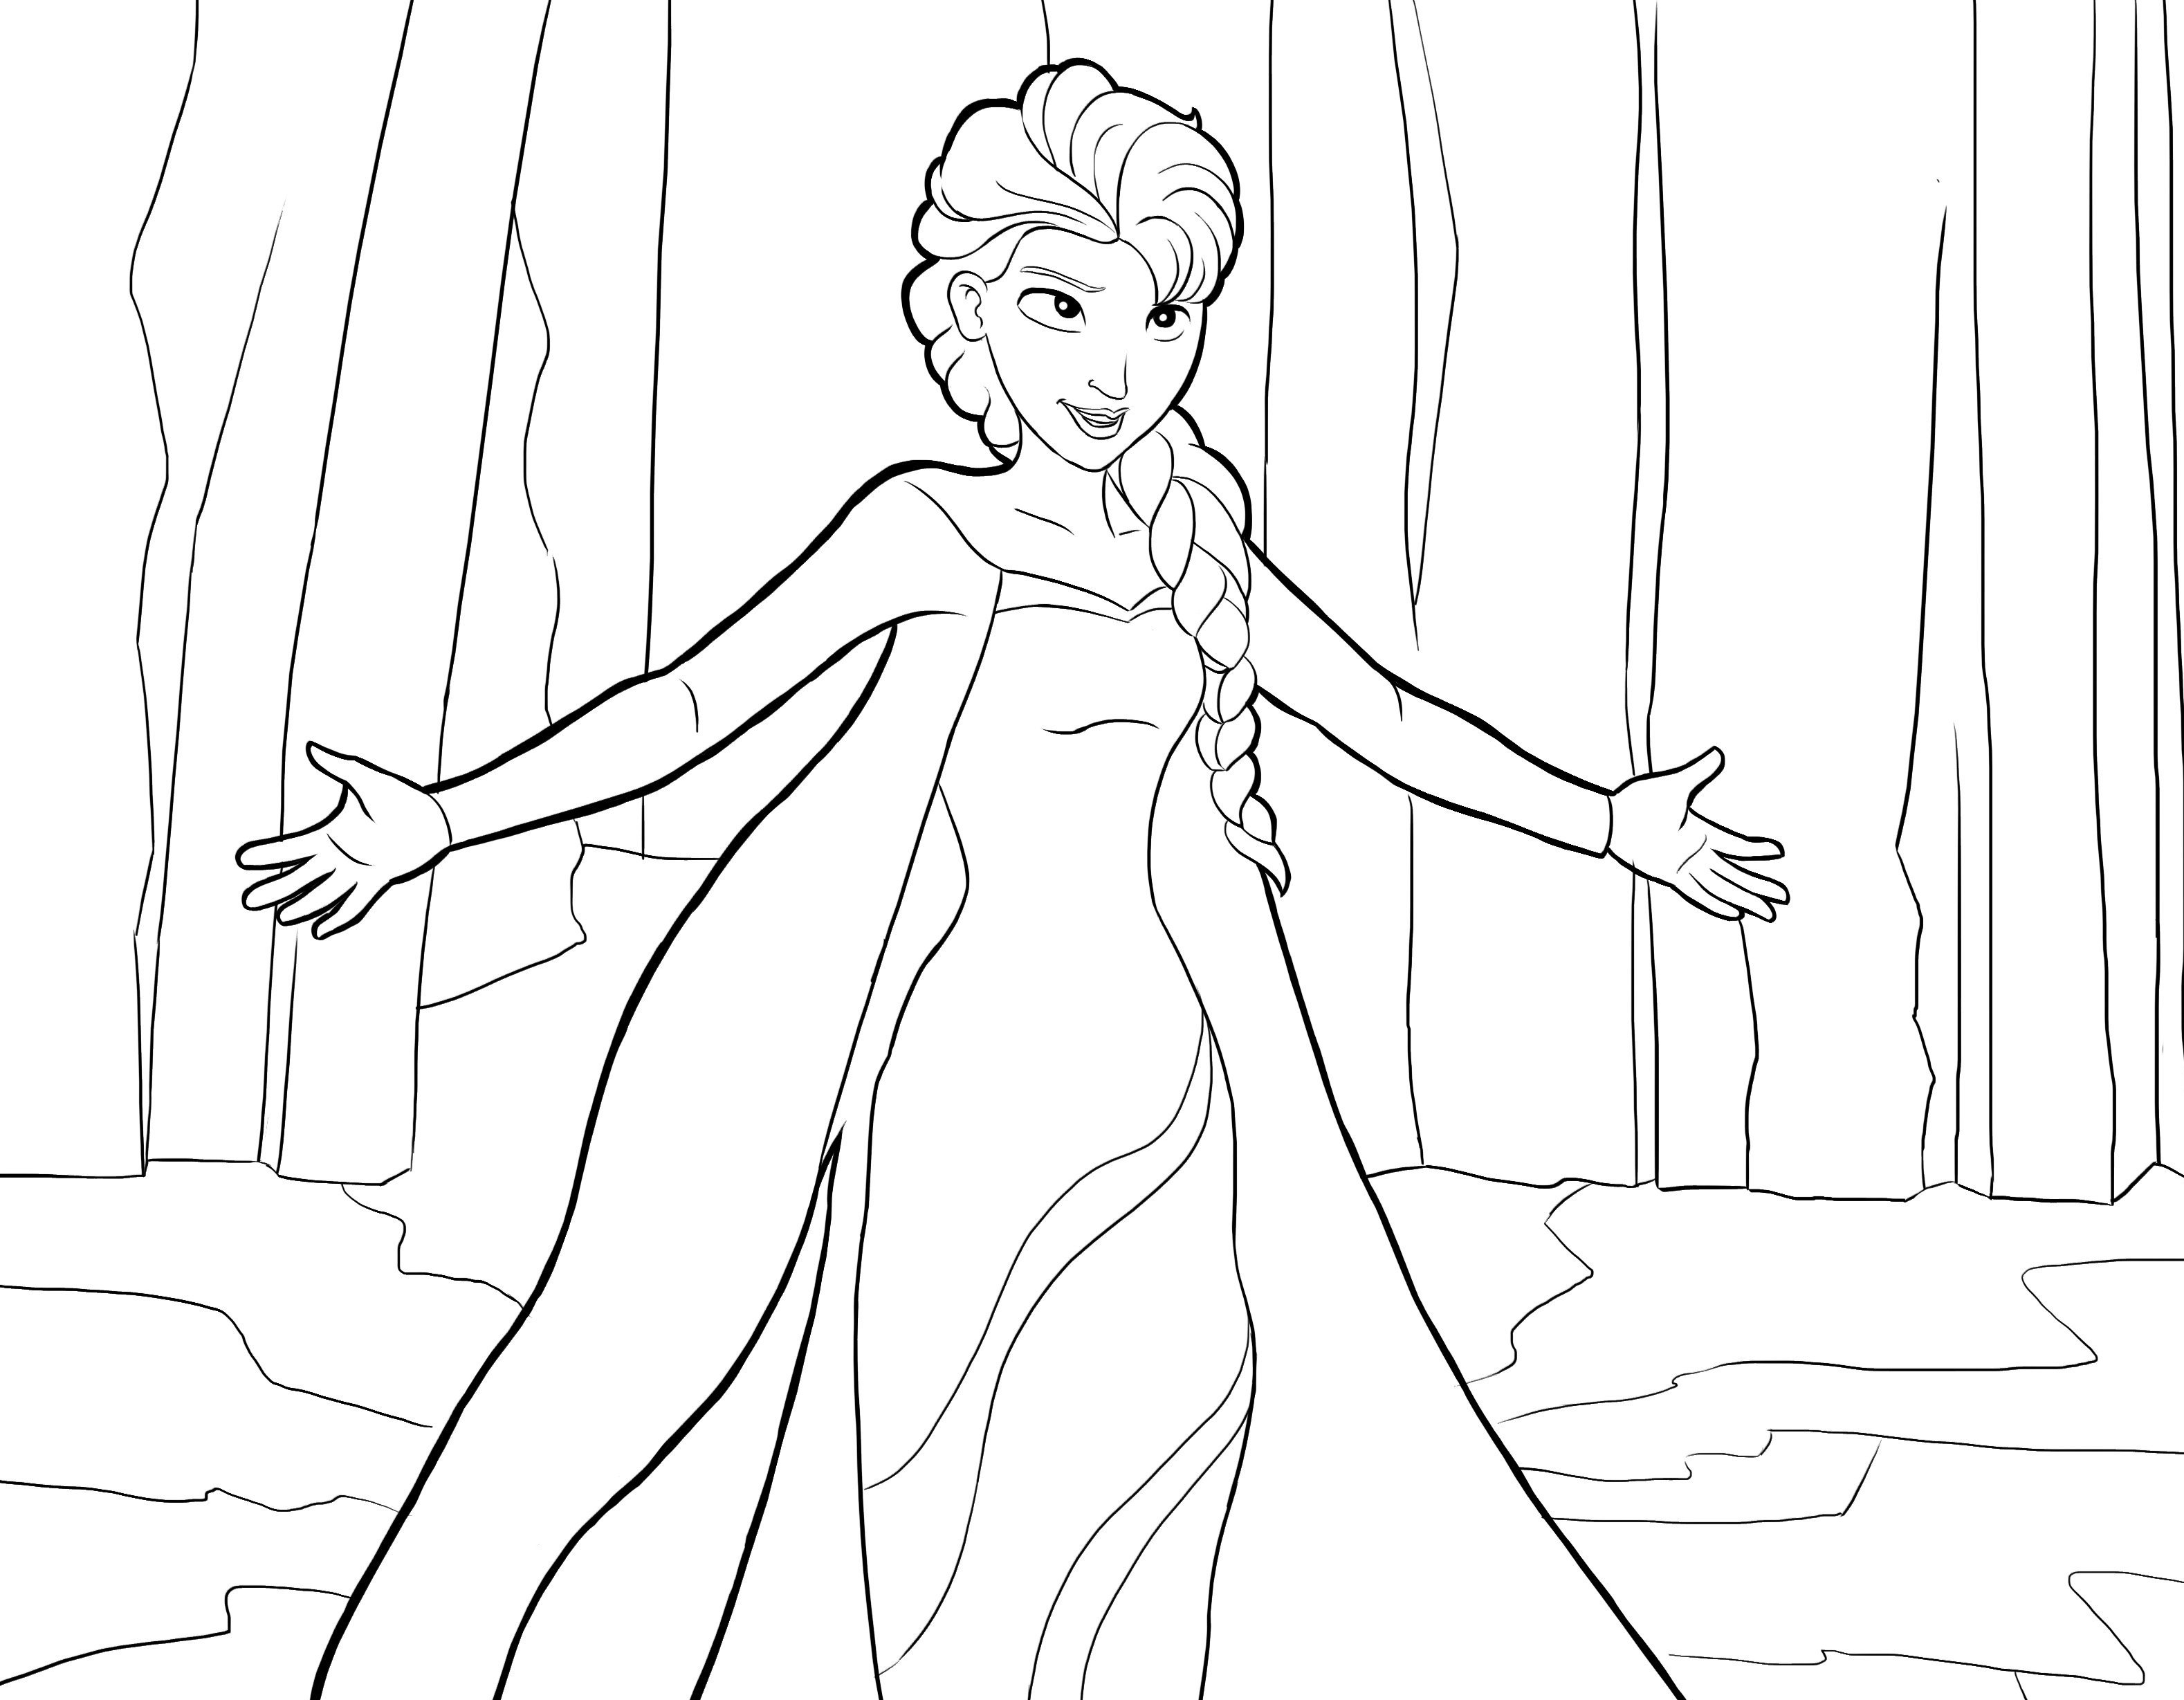 elsa-coloring-pages-01